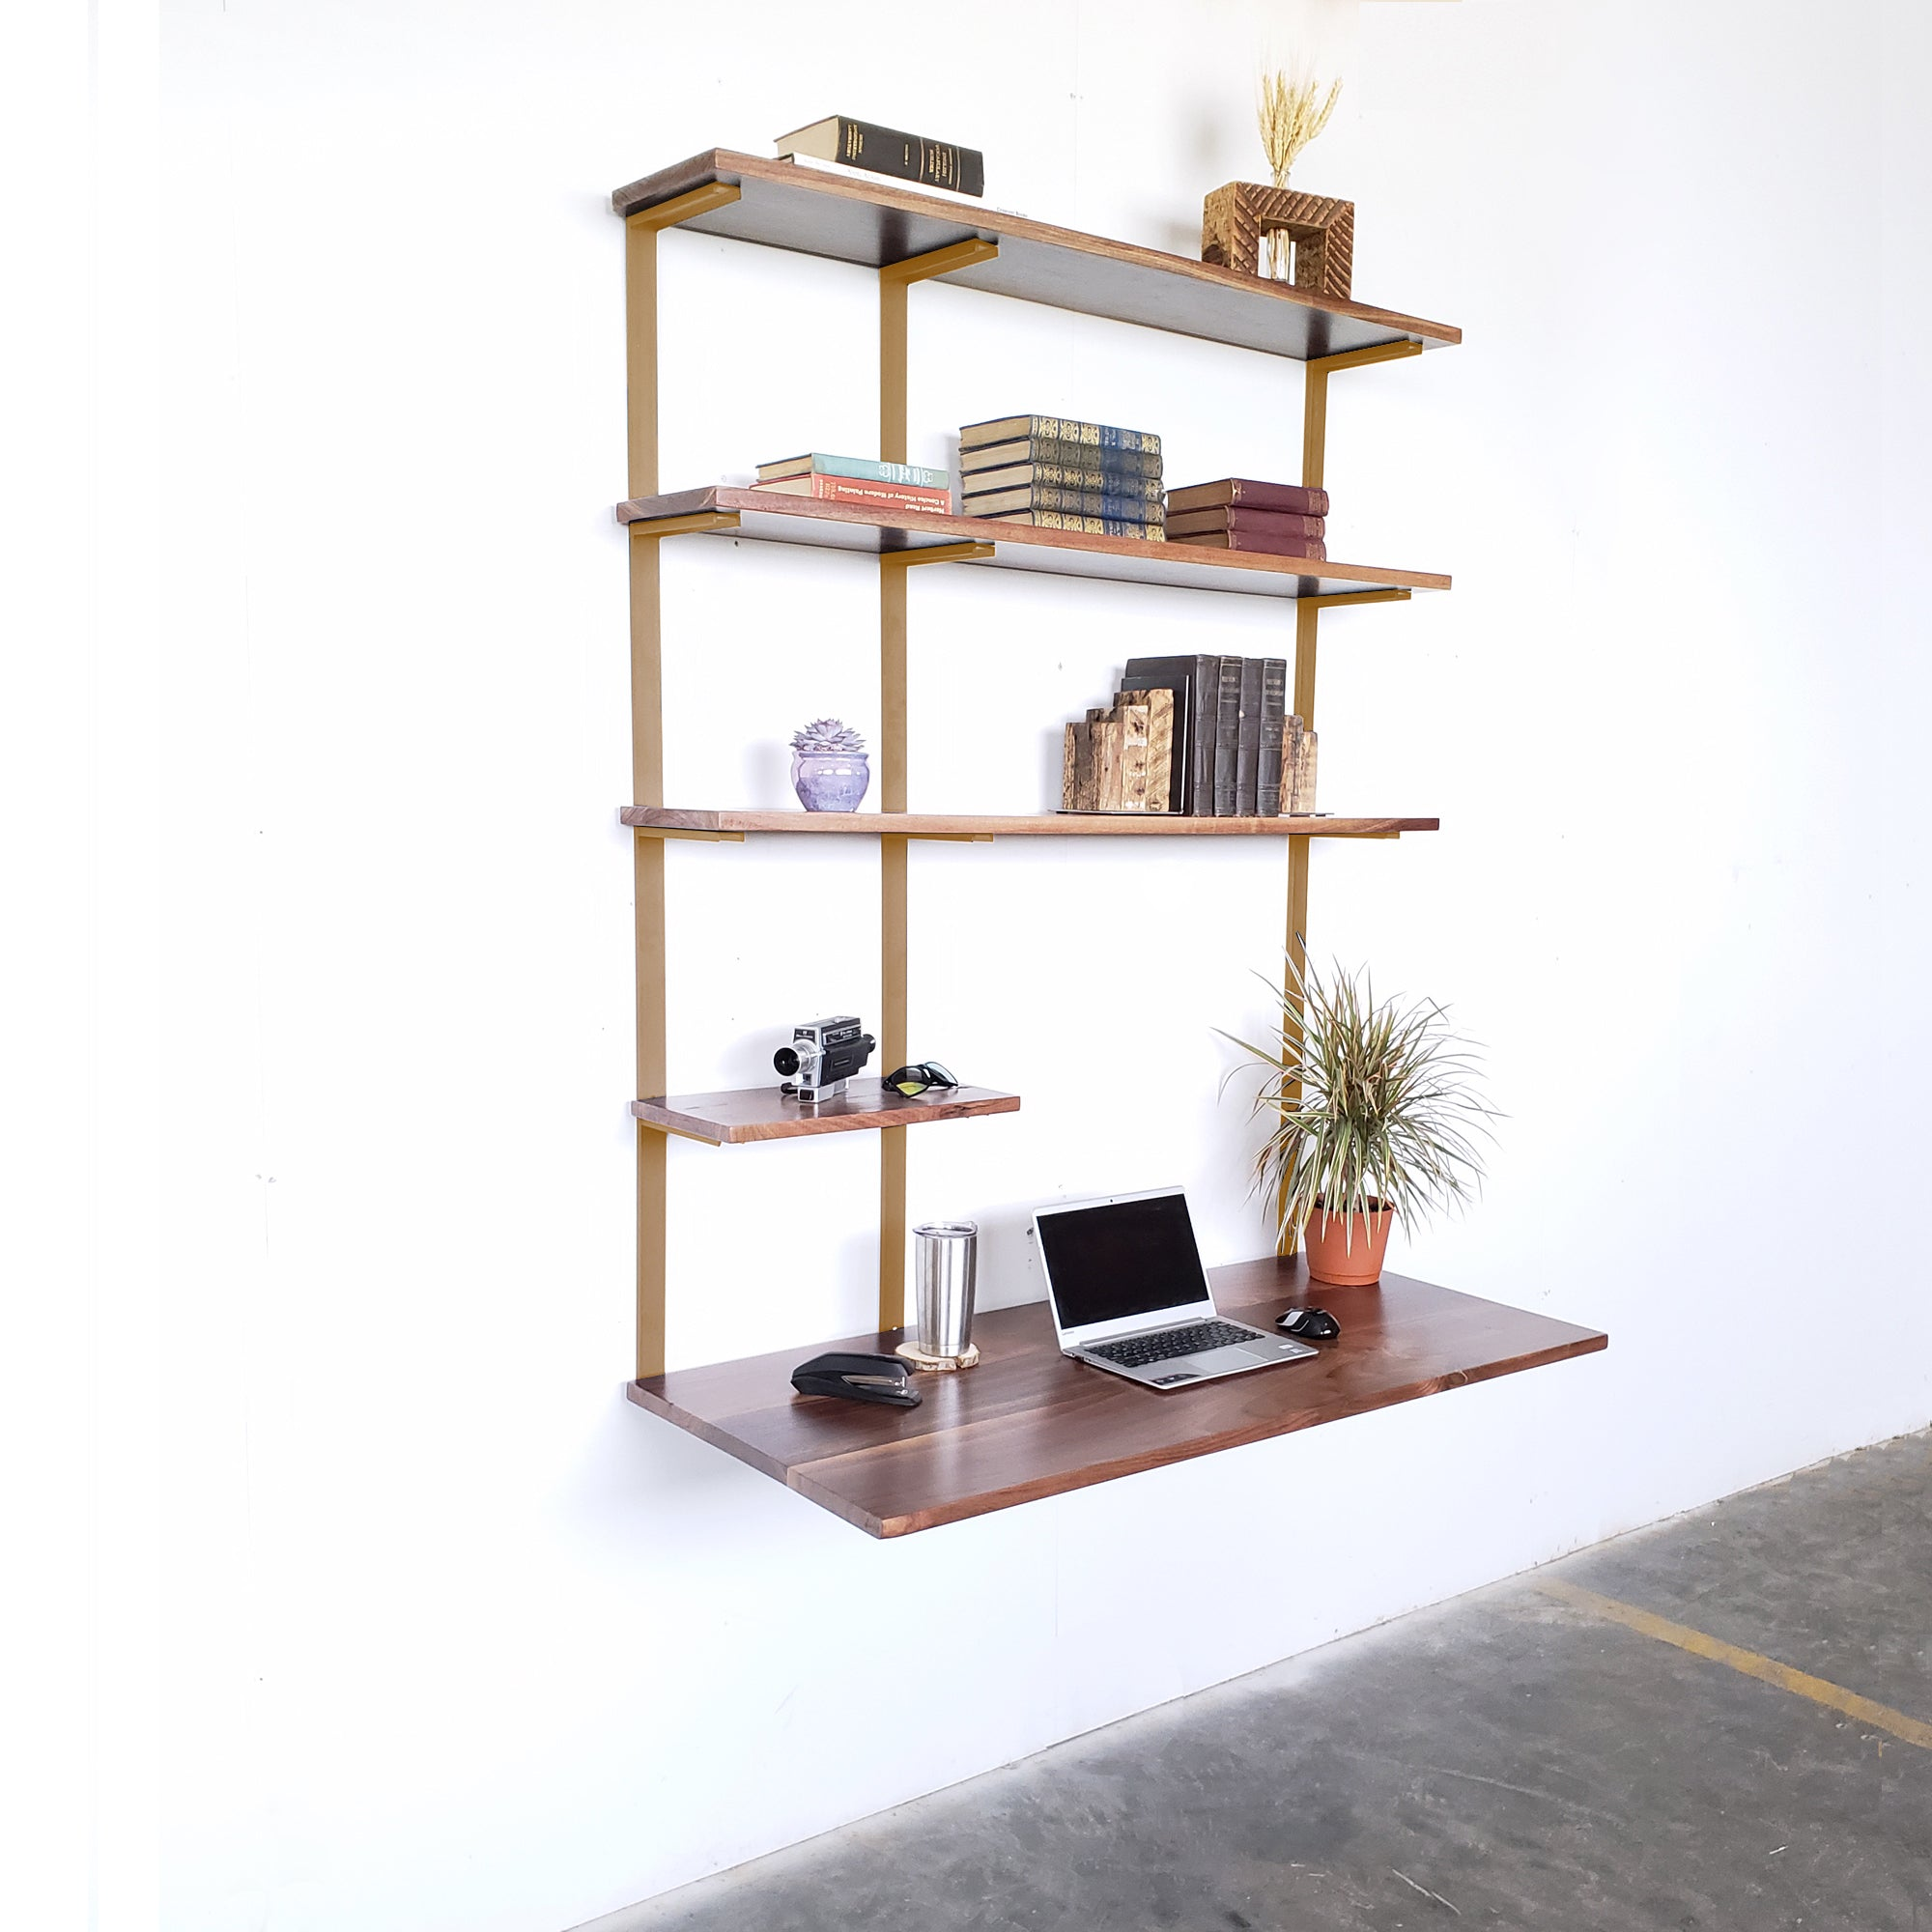 gold-bracket-wall-mount-desk_mid-century-modern-wall-unit_home-office_wall-shelf